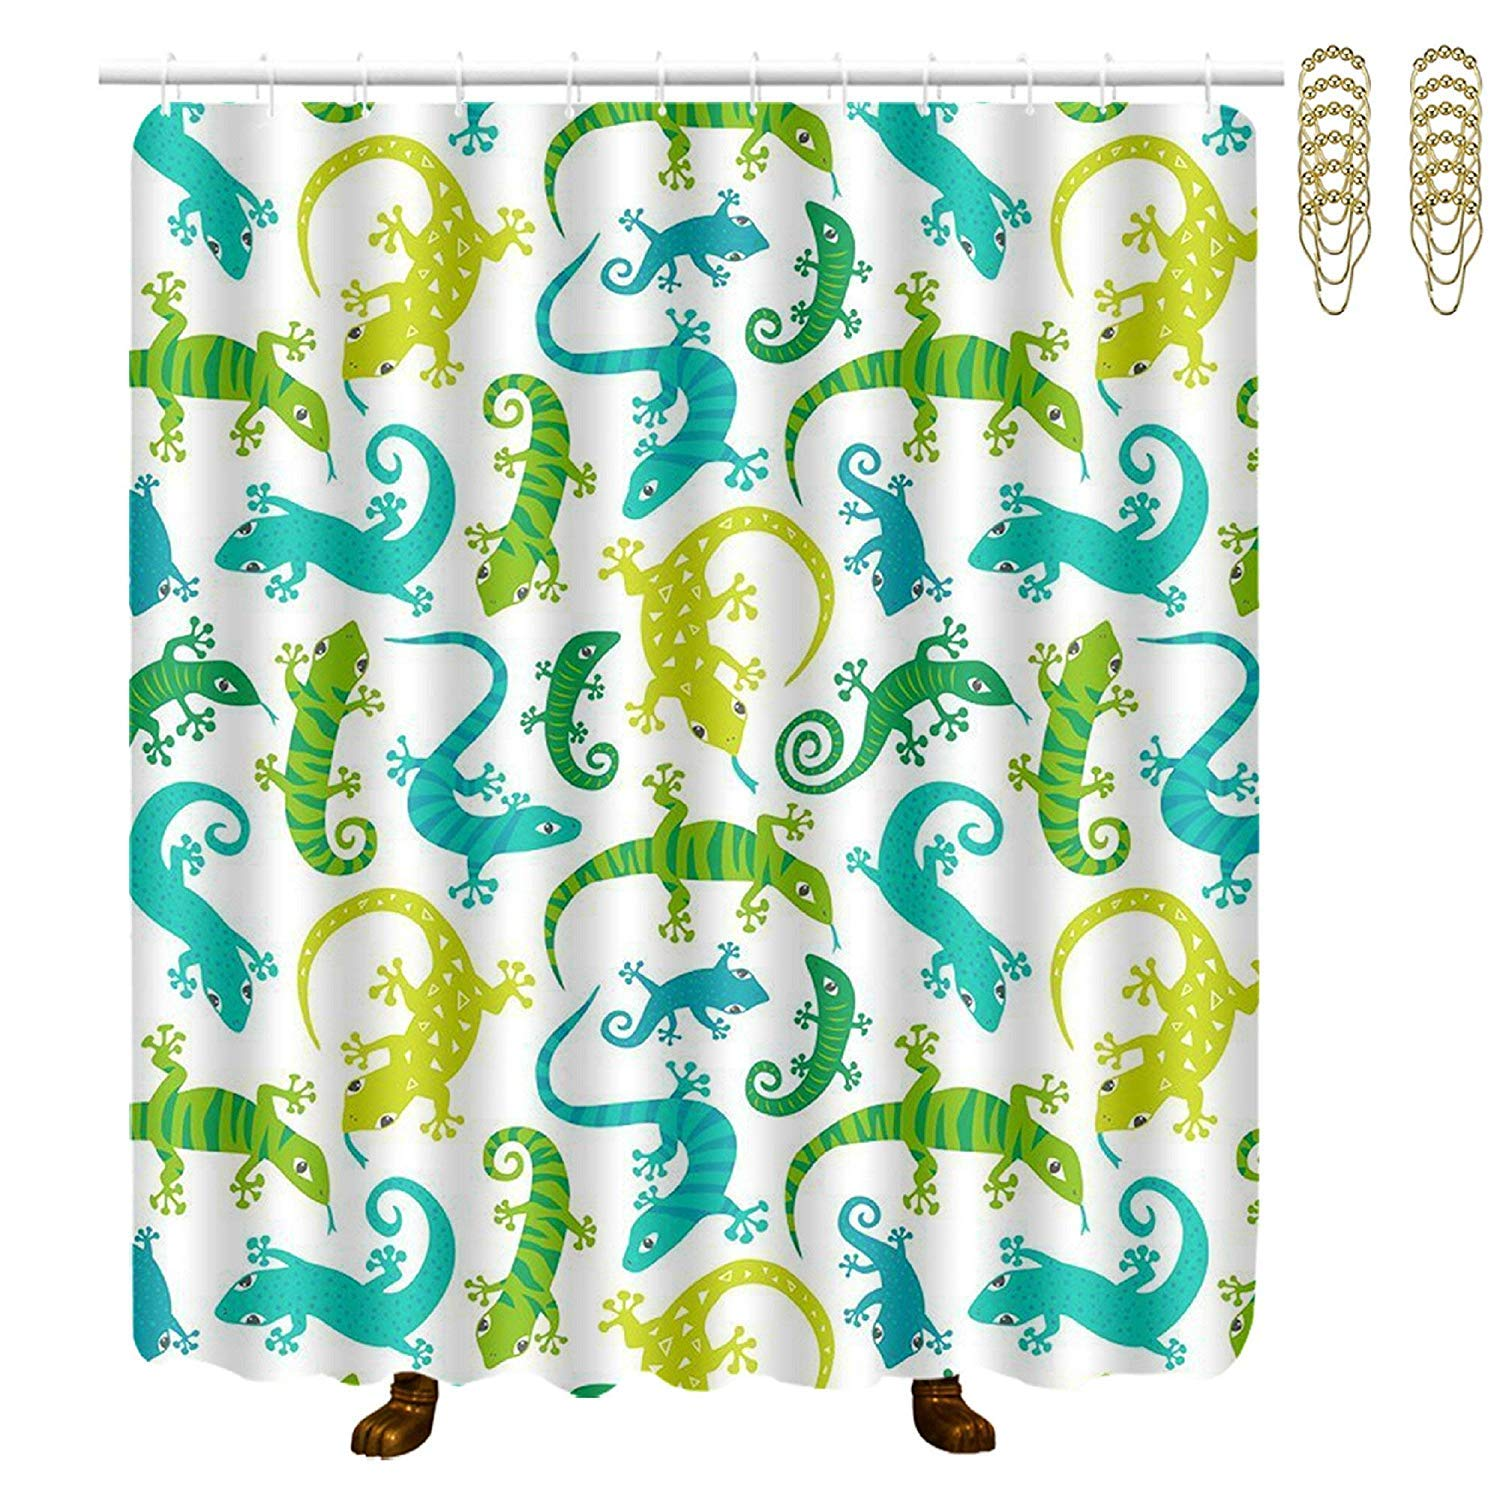 COVASA Decorative Water Repellant Shower Curtain 72x72 Inches Comes with 12 Hooks (Cute Lizards Animals)